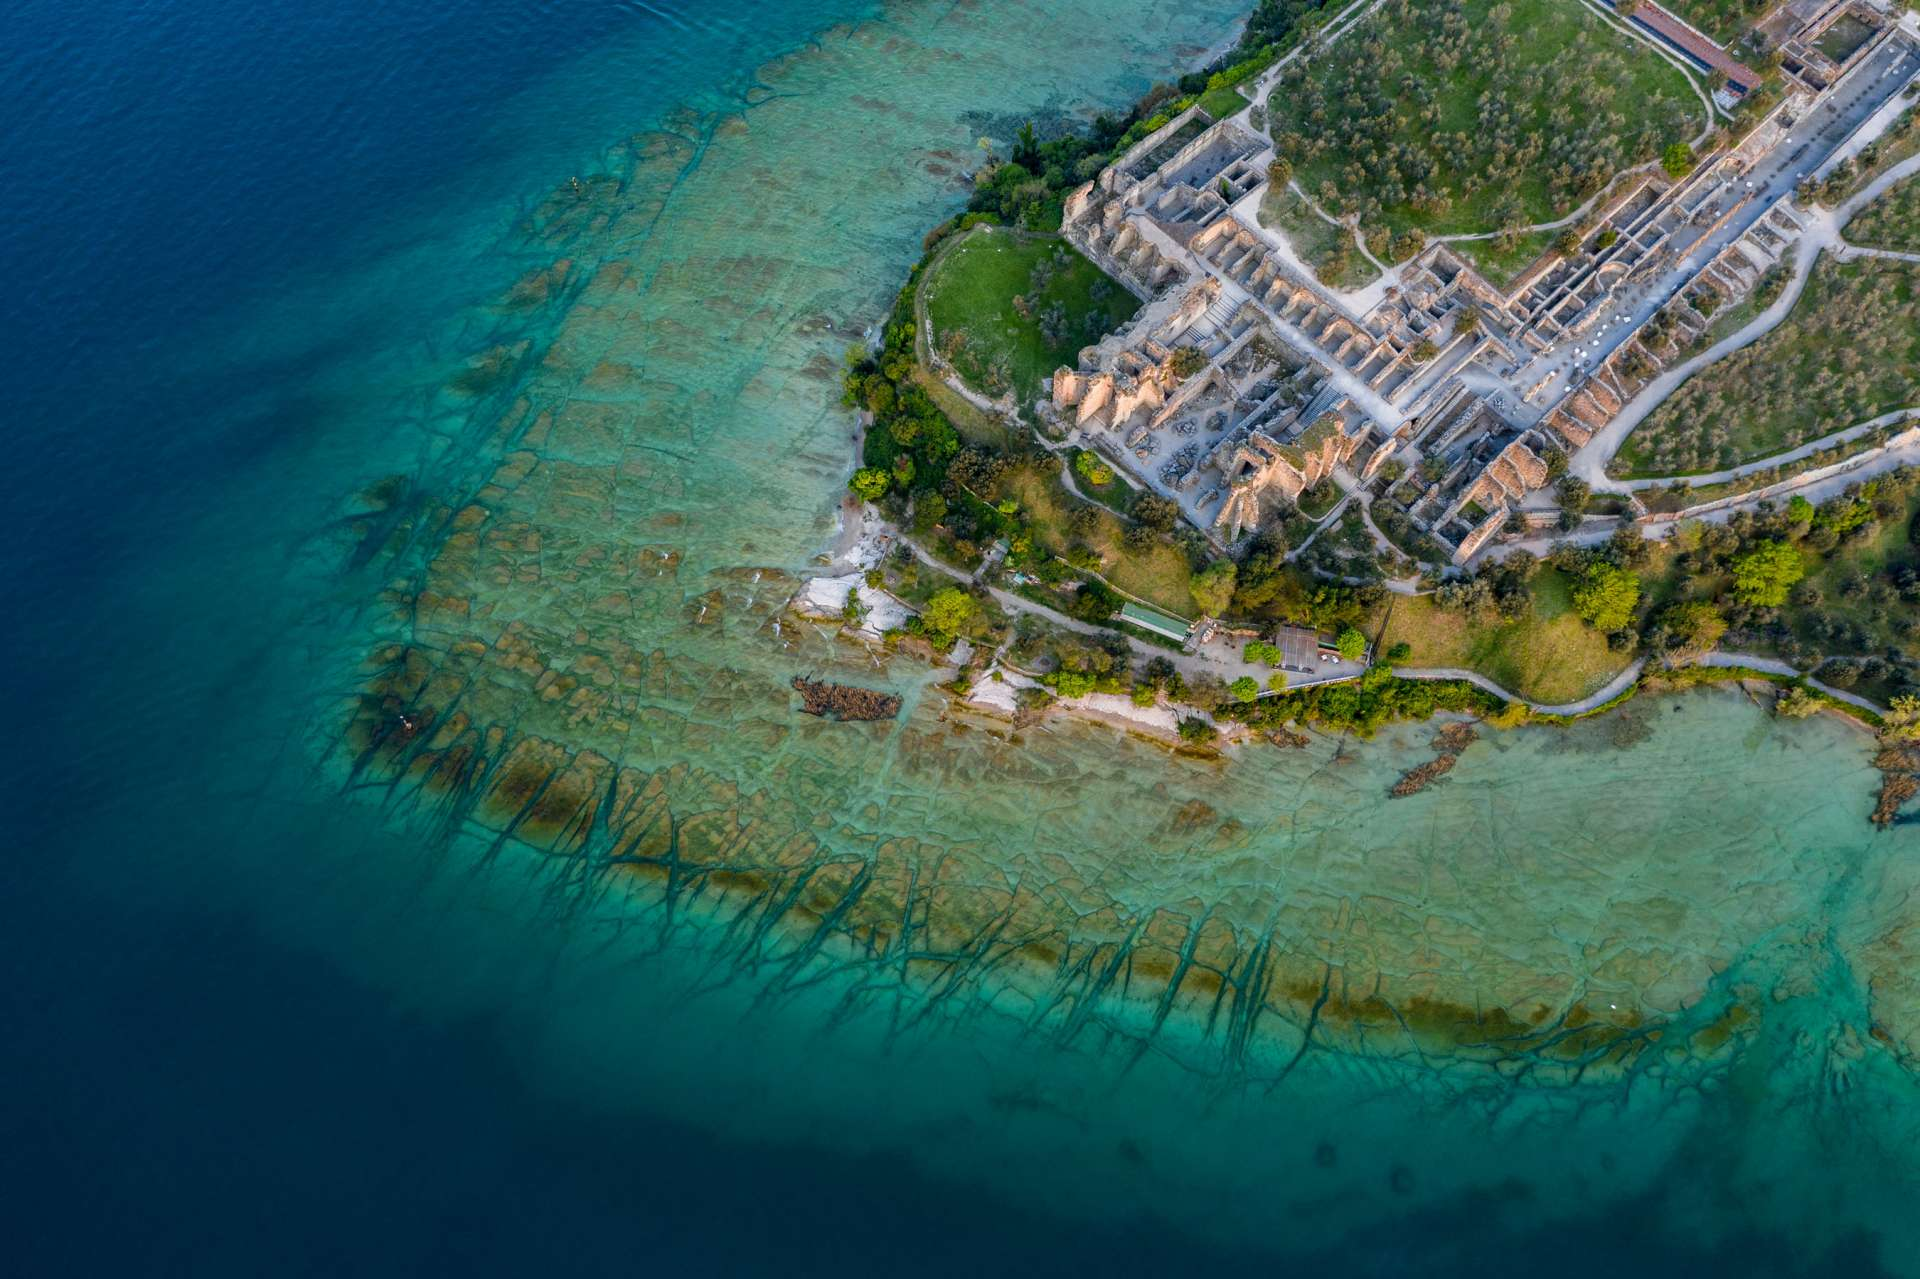 Grotto of Catullus Sirmione Lake of Garda Aerial Drone View 3